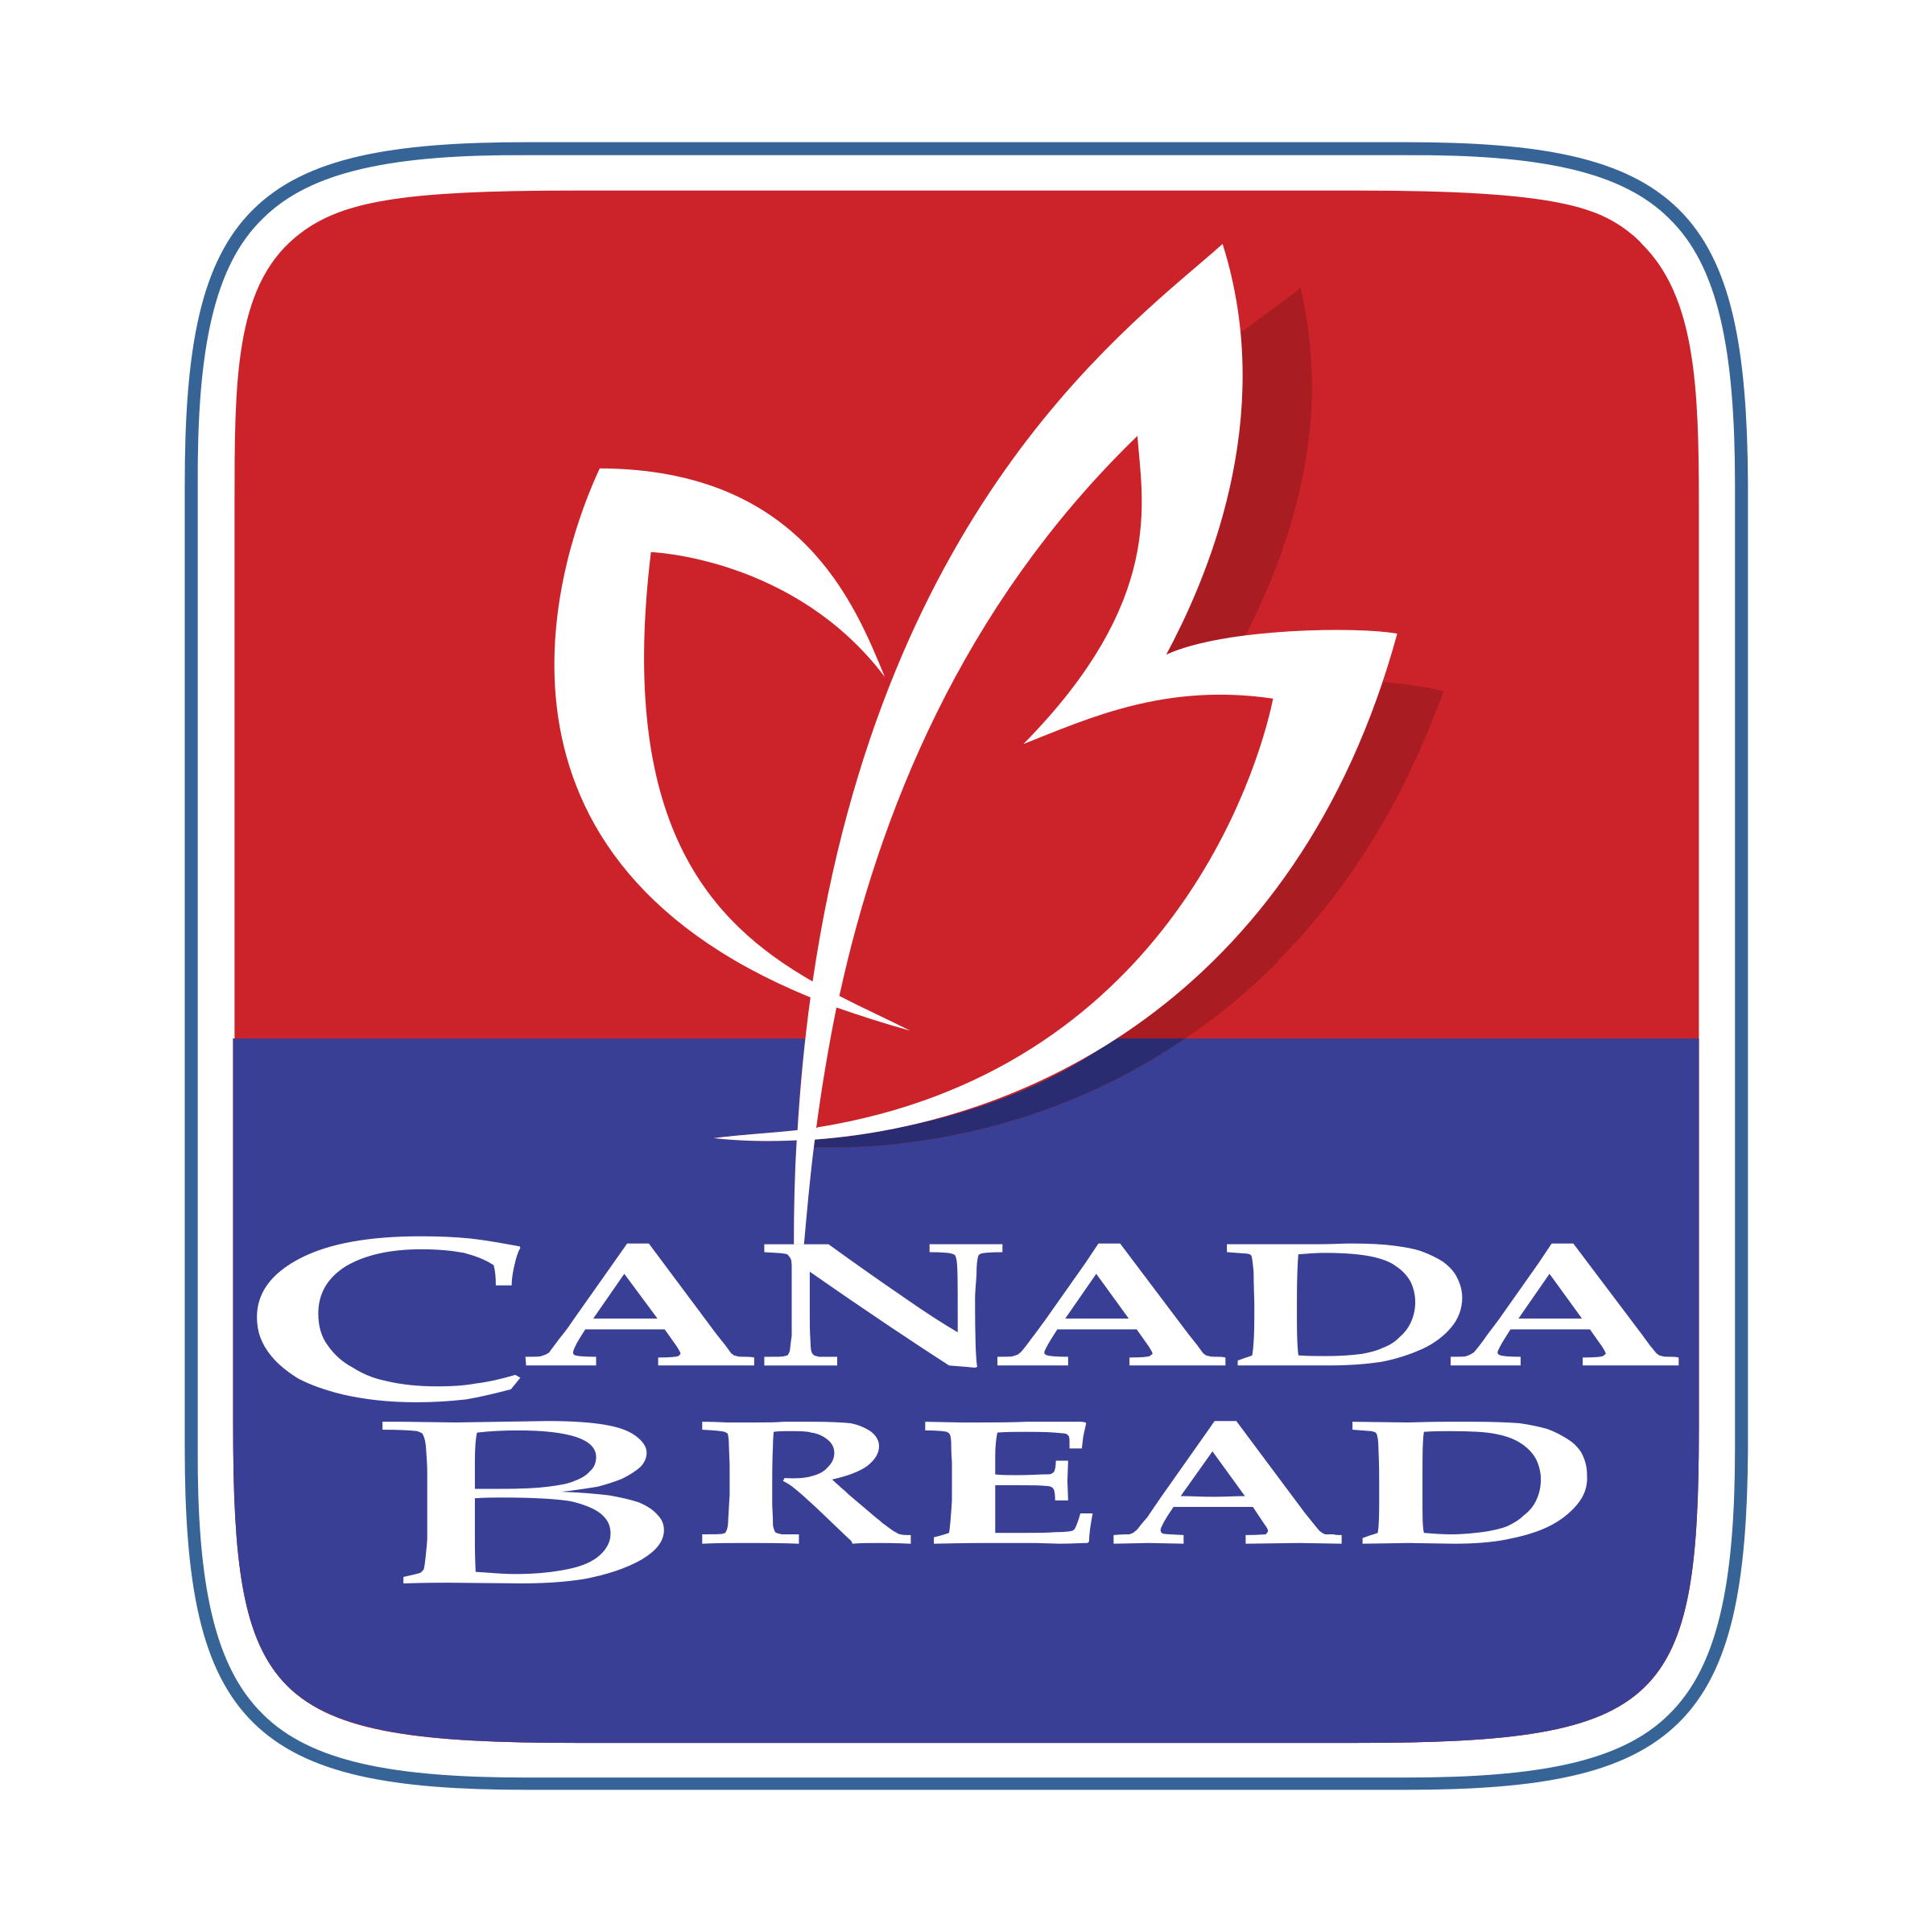 canada-bread-logo-png-transparent